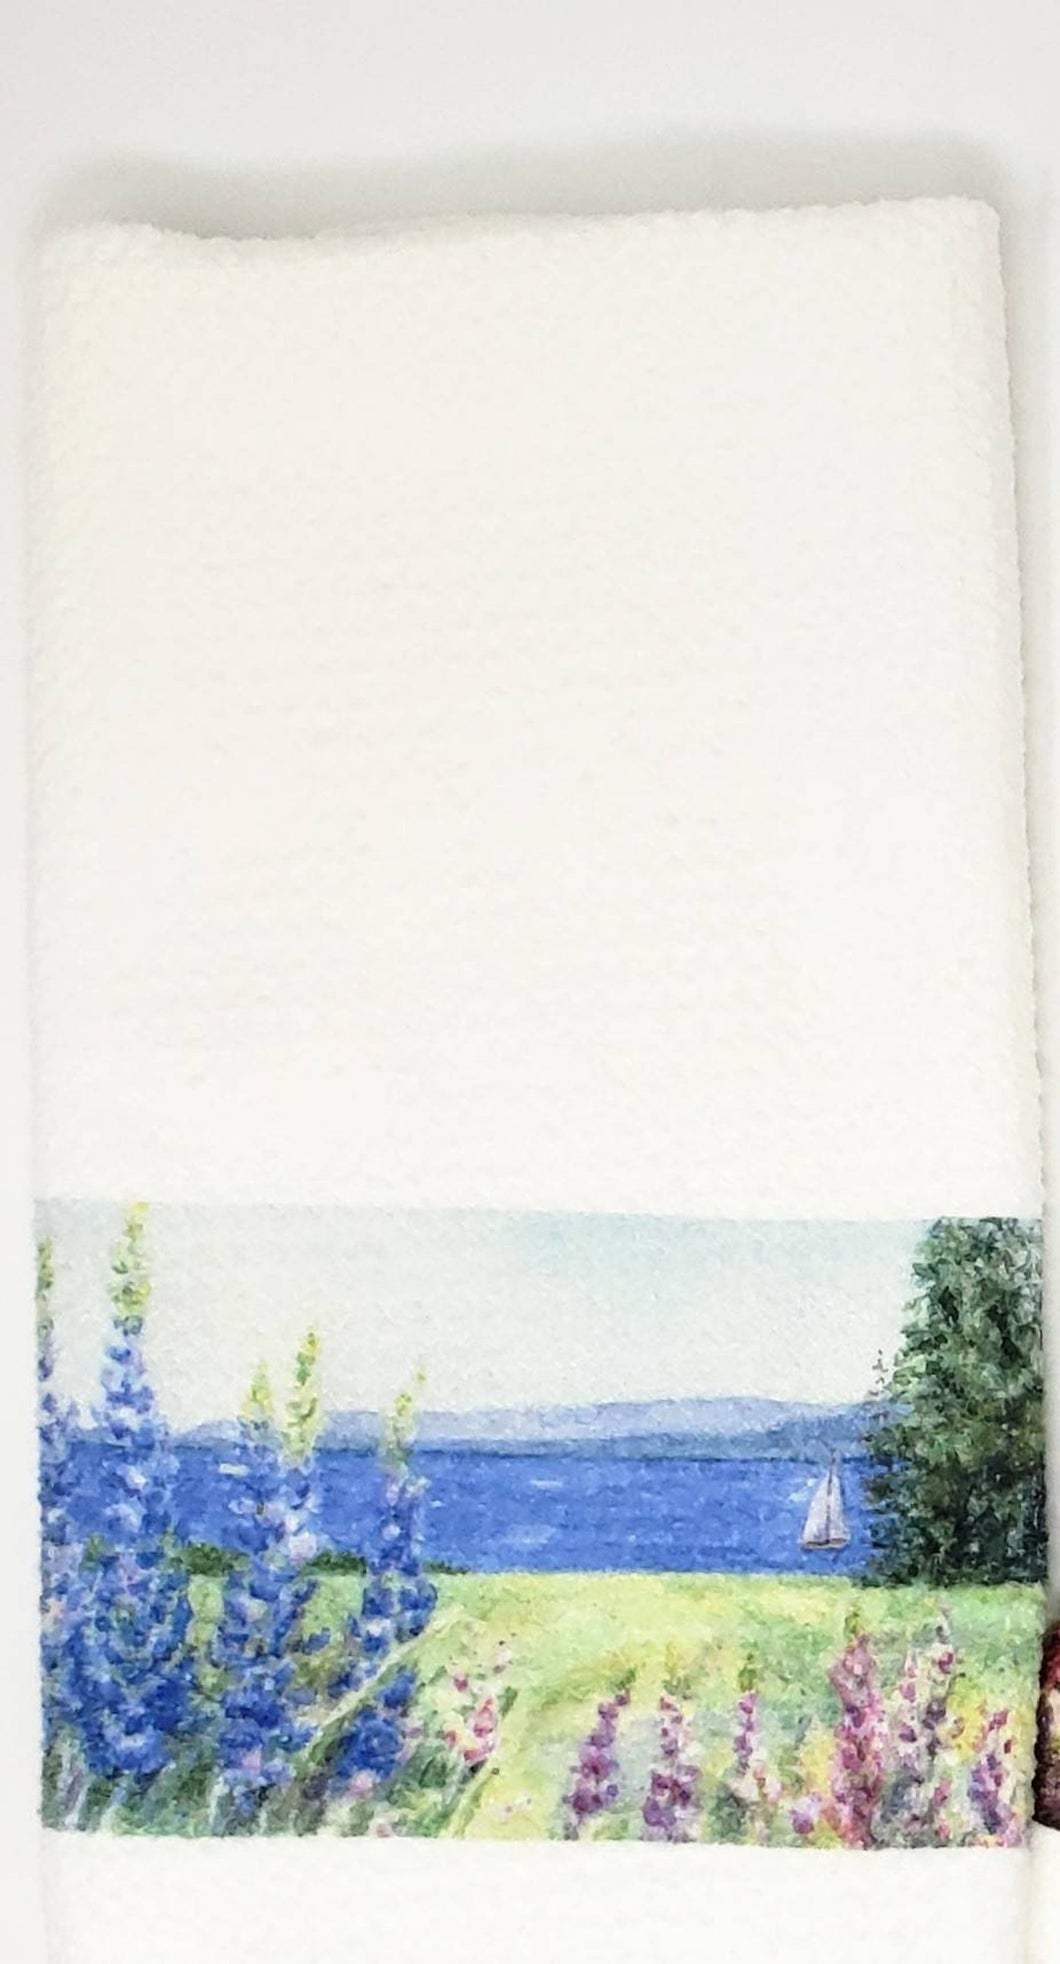 Lupine And The Sea Tea Towel: lupine tea towel lupine kitchen towel, lupine painting, Maine gift, Maine decor, cottage decor lupine art gift - Leigh Barry Watercolors